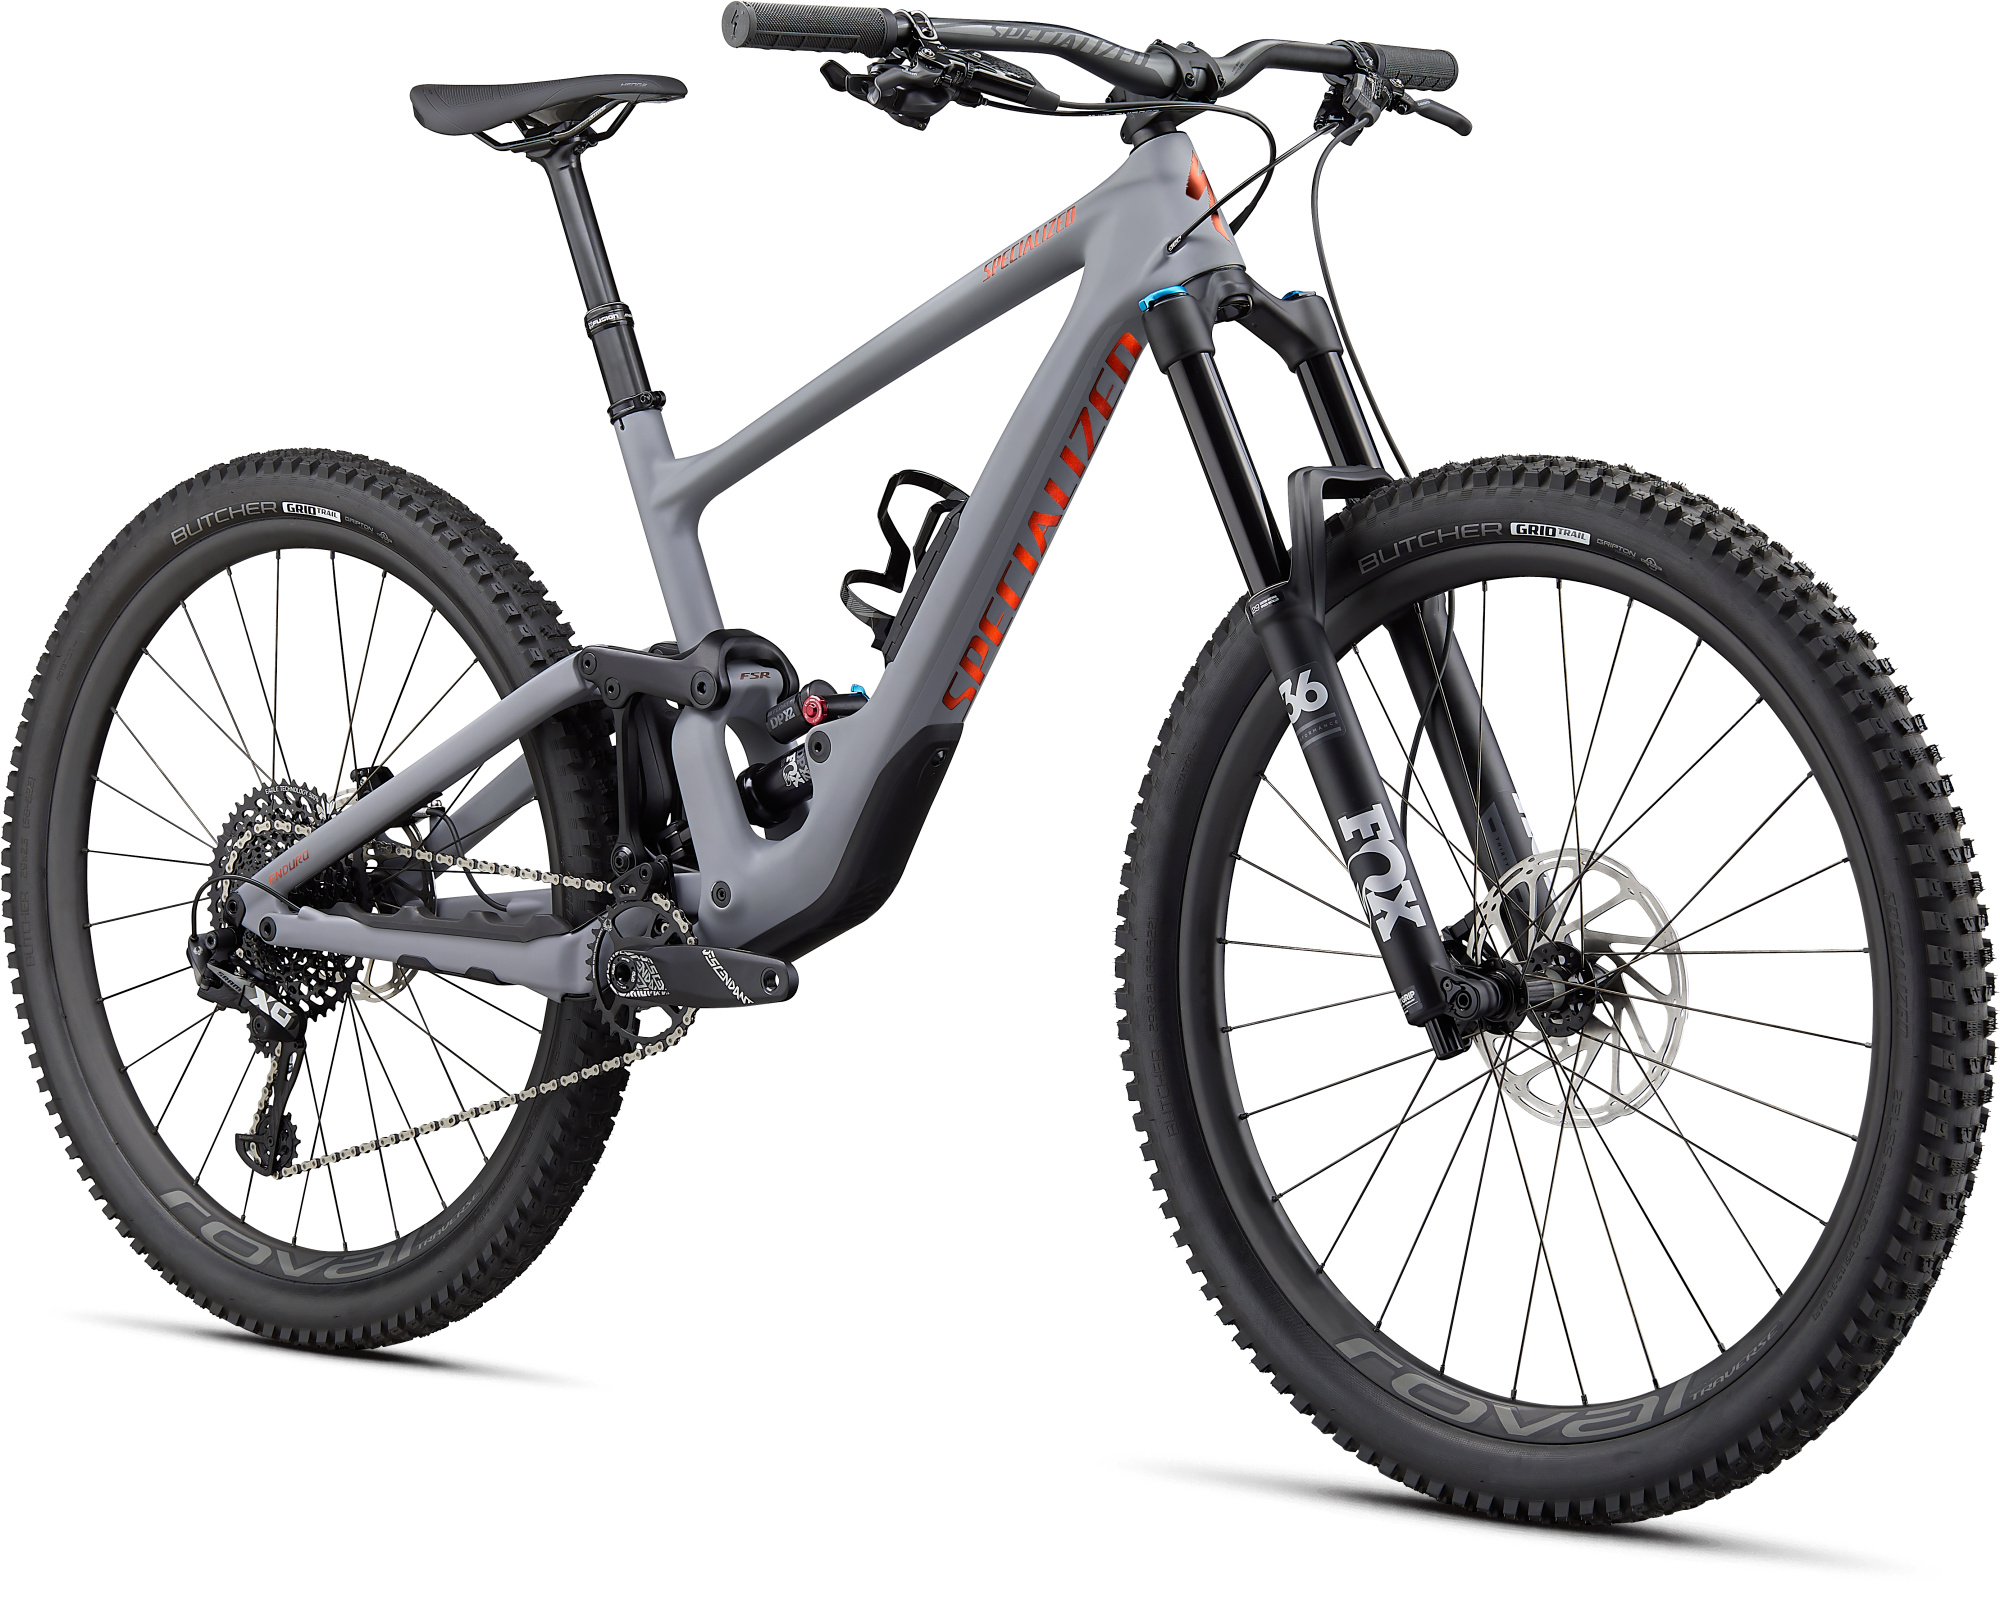 93620-30_ENDURO-EXPERT-CARBON-29-CLGRY-C